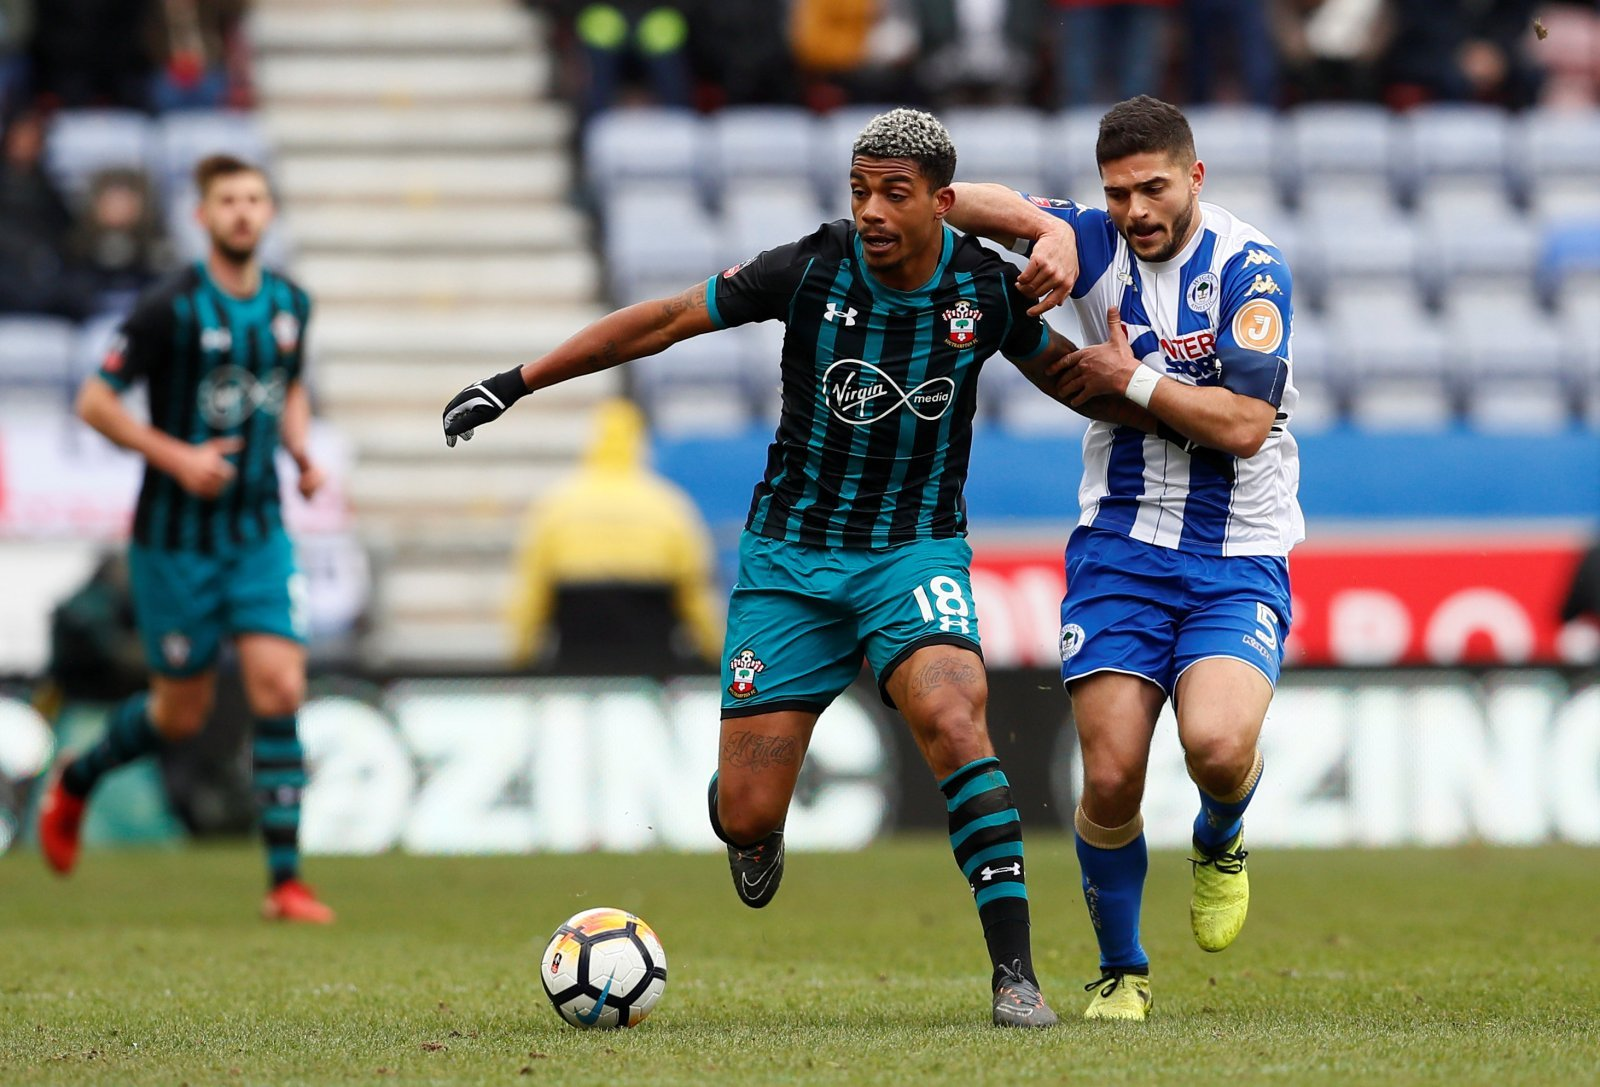 Mario Lemina deal would round off dream summer for West Ham